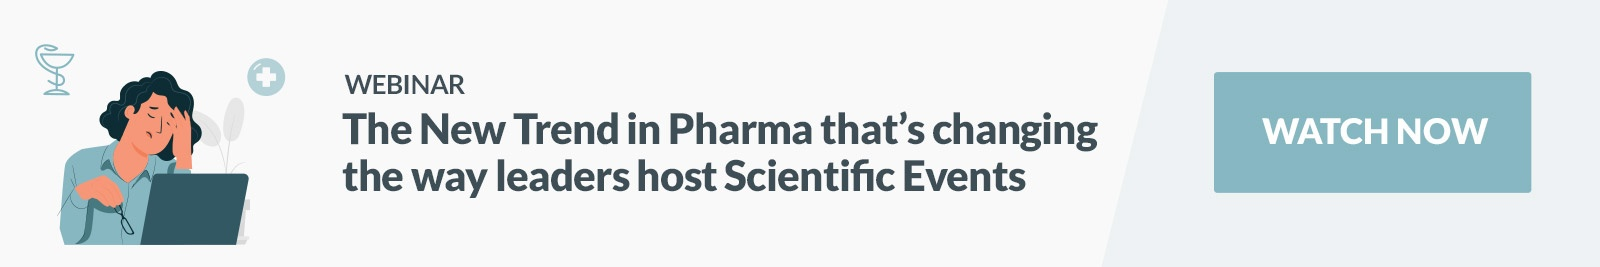 the - new - trend - pharma - changing - way - leaders - host - scientific - events